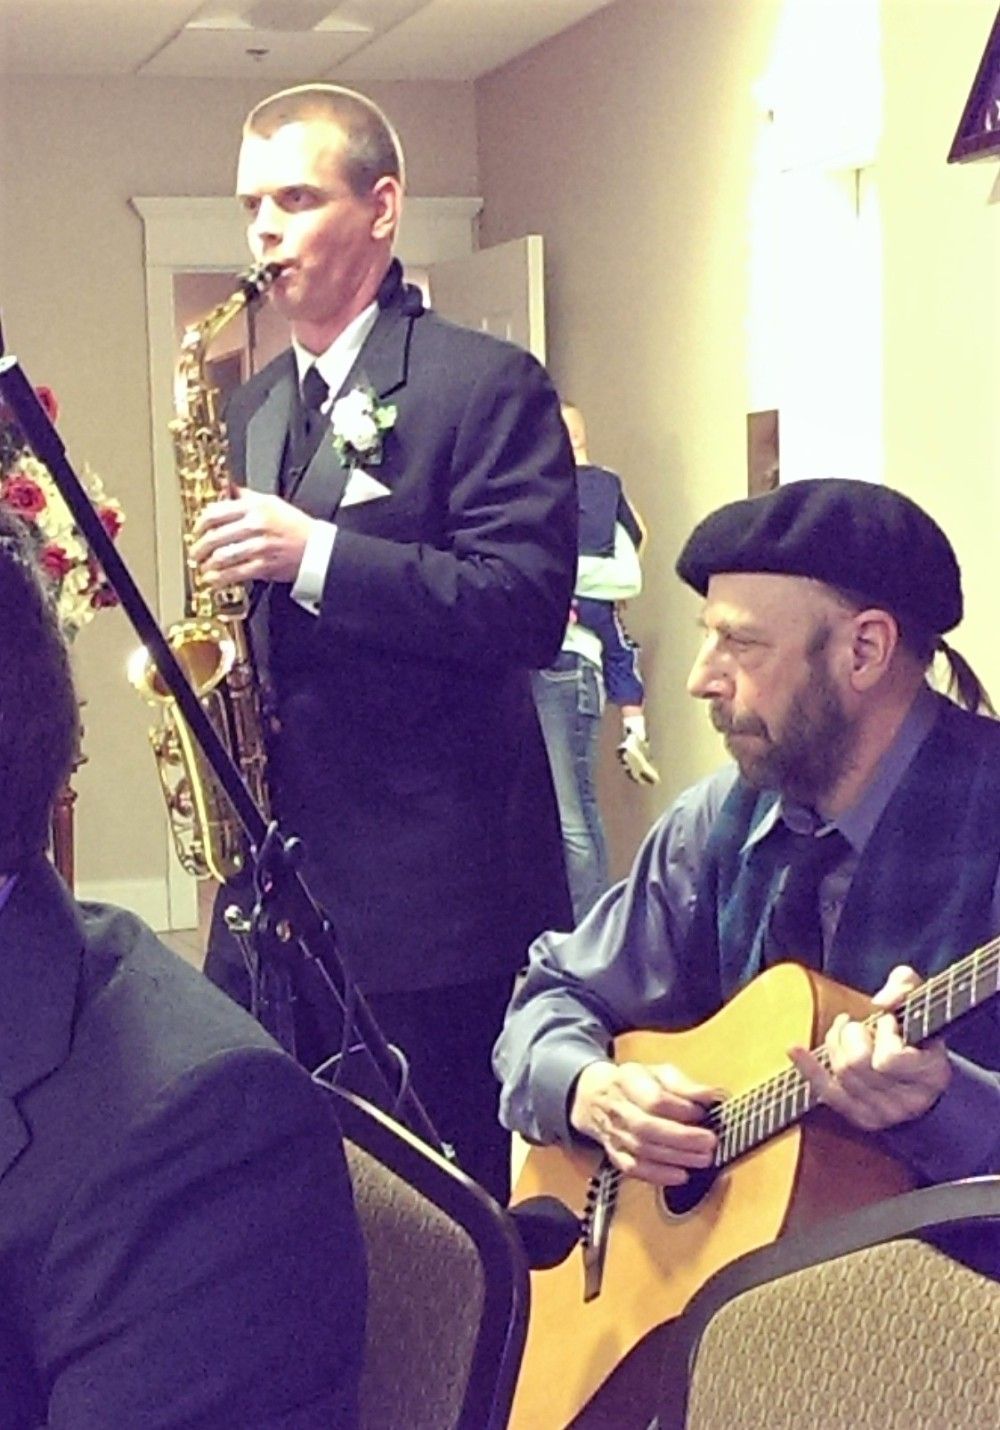 Tom on sax & Alicia's dad on guitar for Amazing Grace